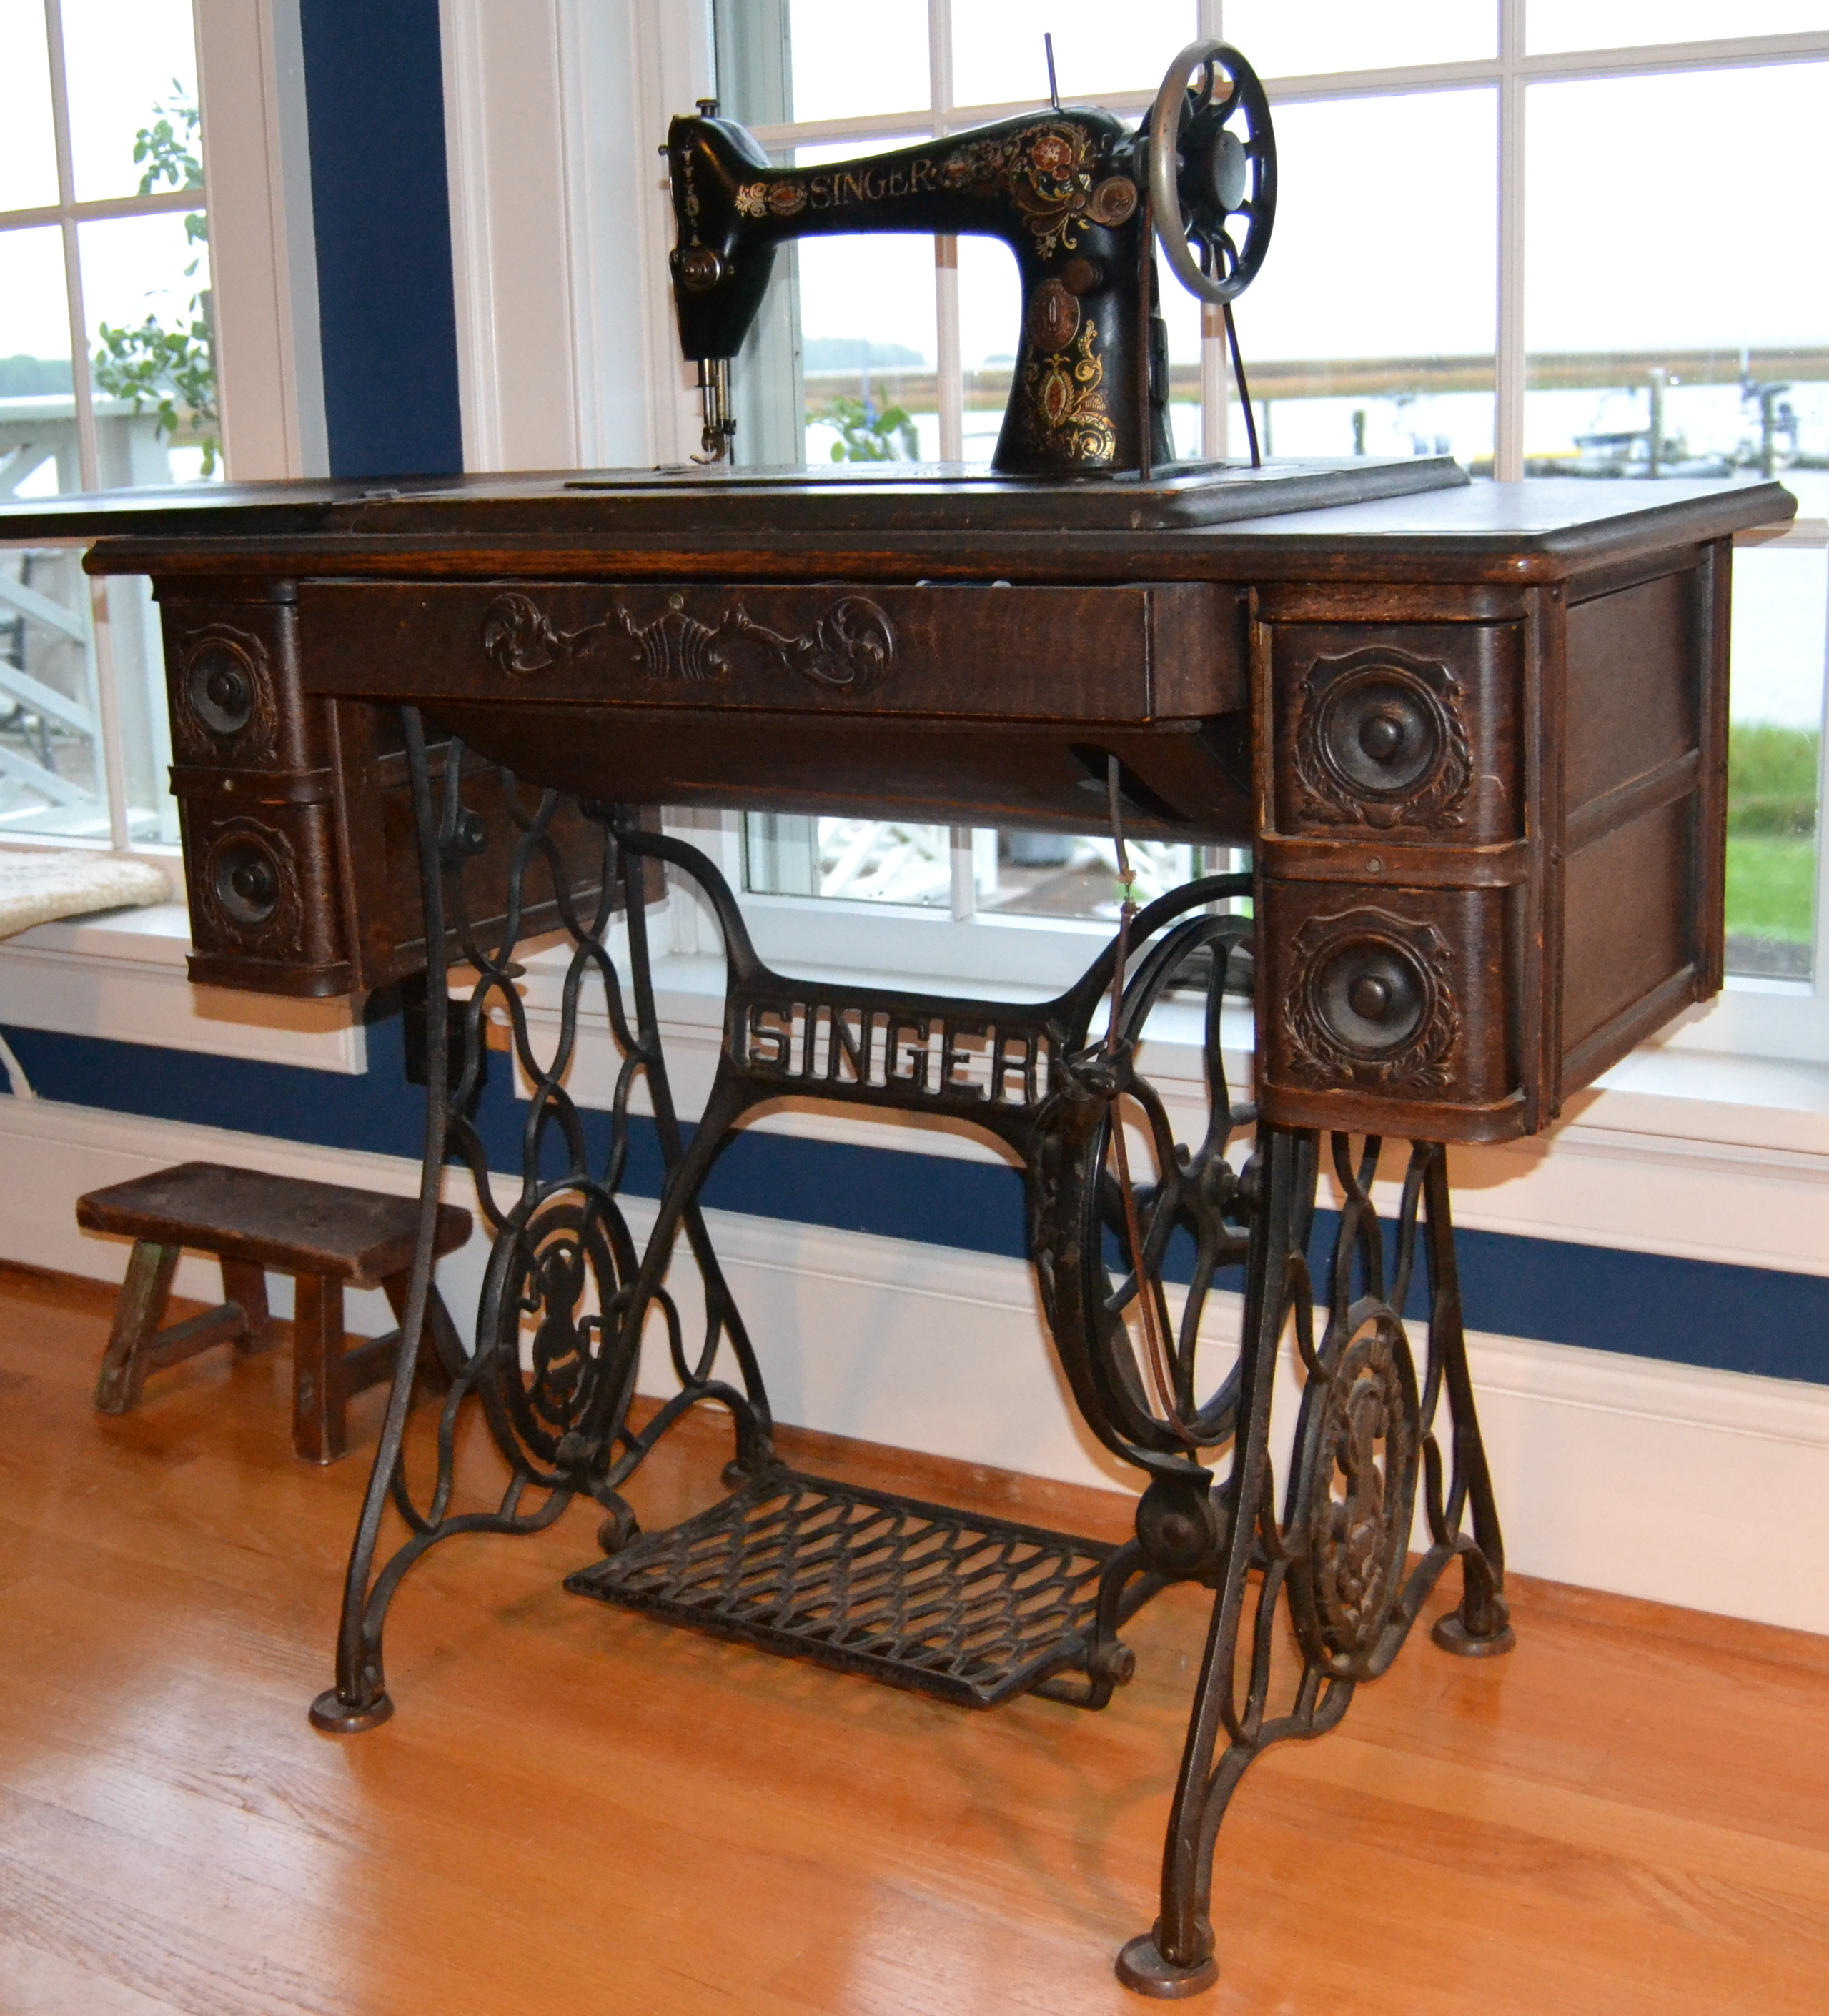 ... Old Singer Treadle Sewing Machine. But ...